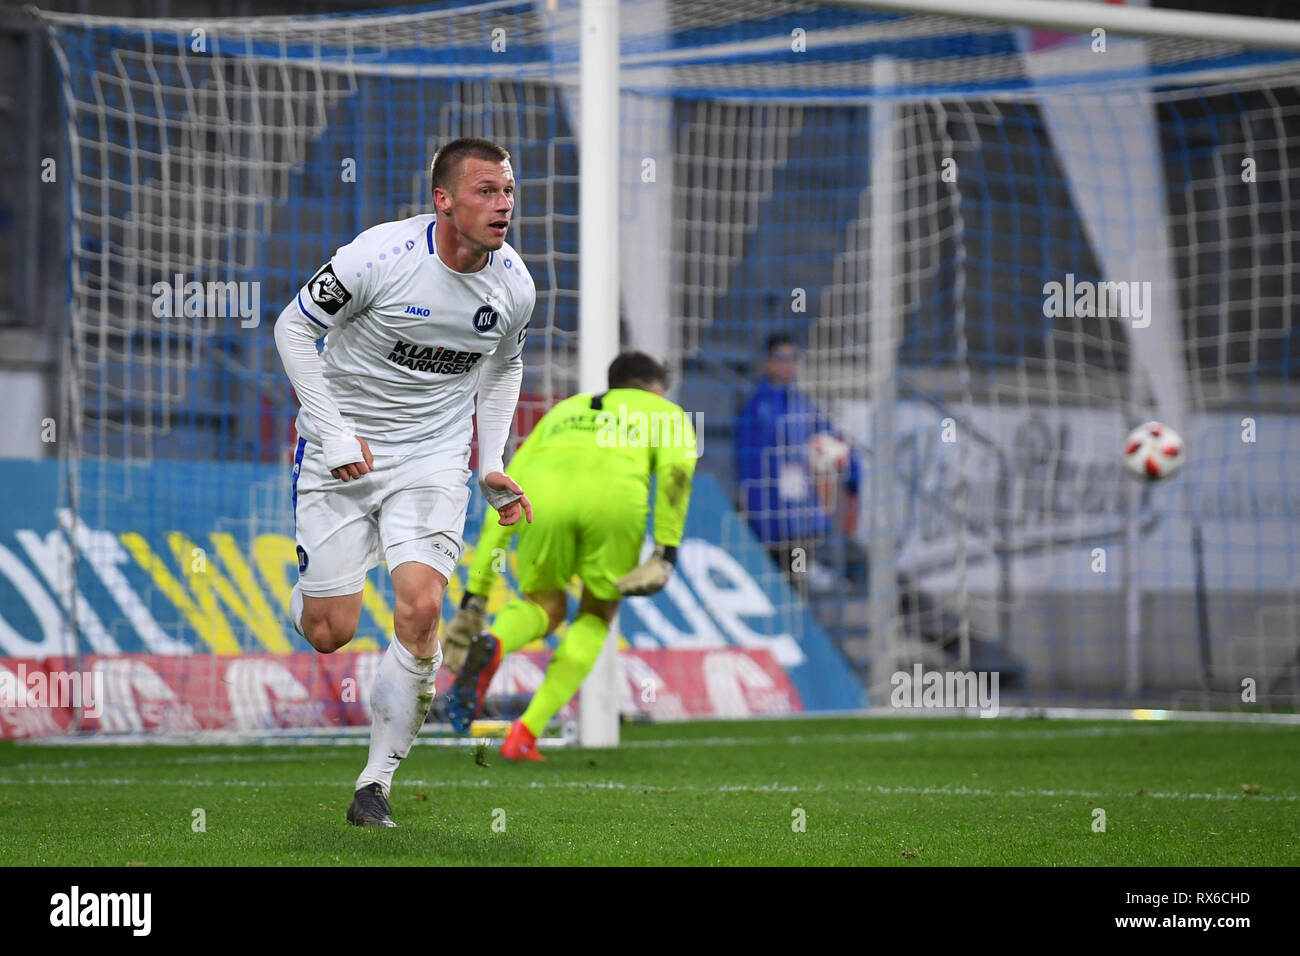 Duisburg, Deutschland. 08th Mar, 2019. jubilation about the 1: 3: Goalscorer Marvin Pourie (KSC). GES/football/3rd league: Krefelder football club Uerdingen - Karlsruher SC, 08.03.2019 Football/Soccer: 3rd League: KFC Uerdingen vs Karlsruher SC, Duisburg, March 8, 2019 | usage worldwide Credit: dpa/Alamy Live News - Stock Image